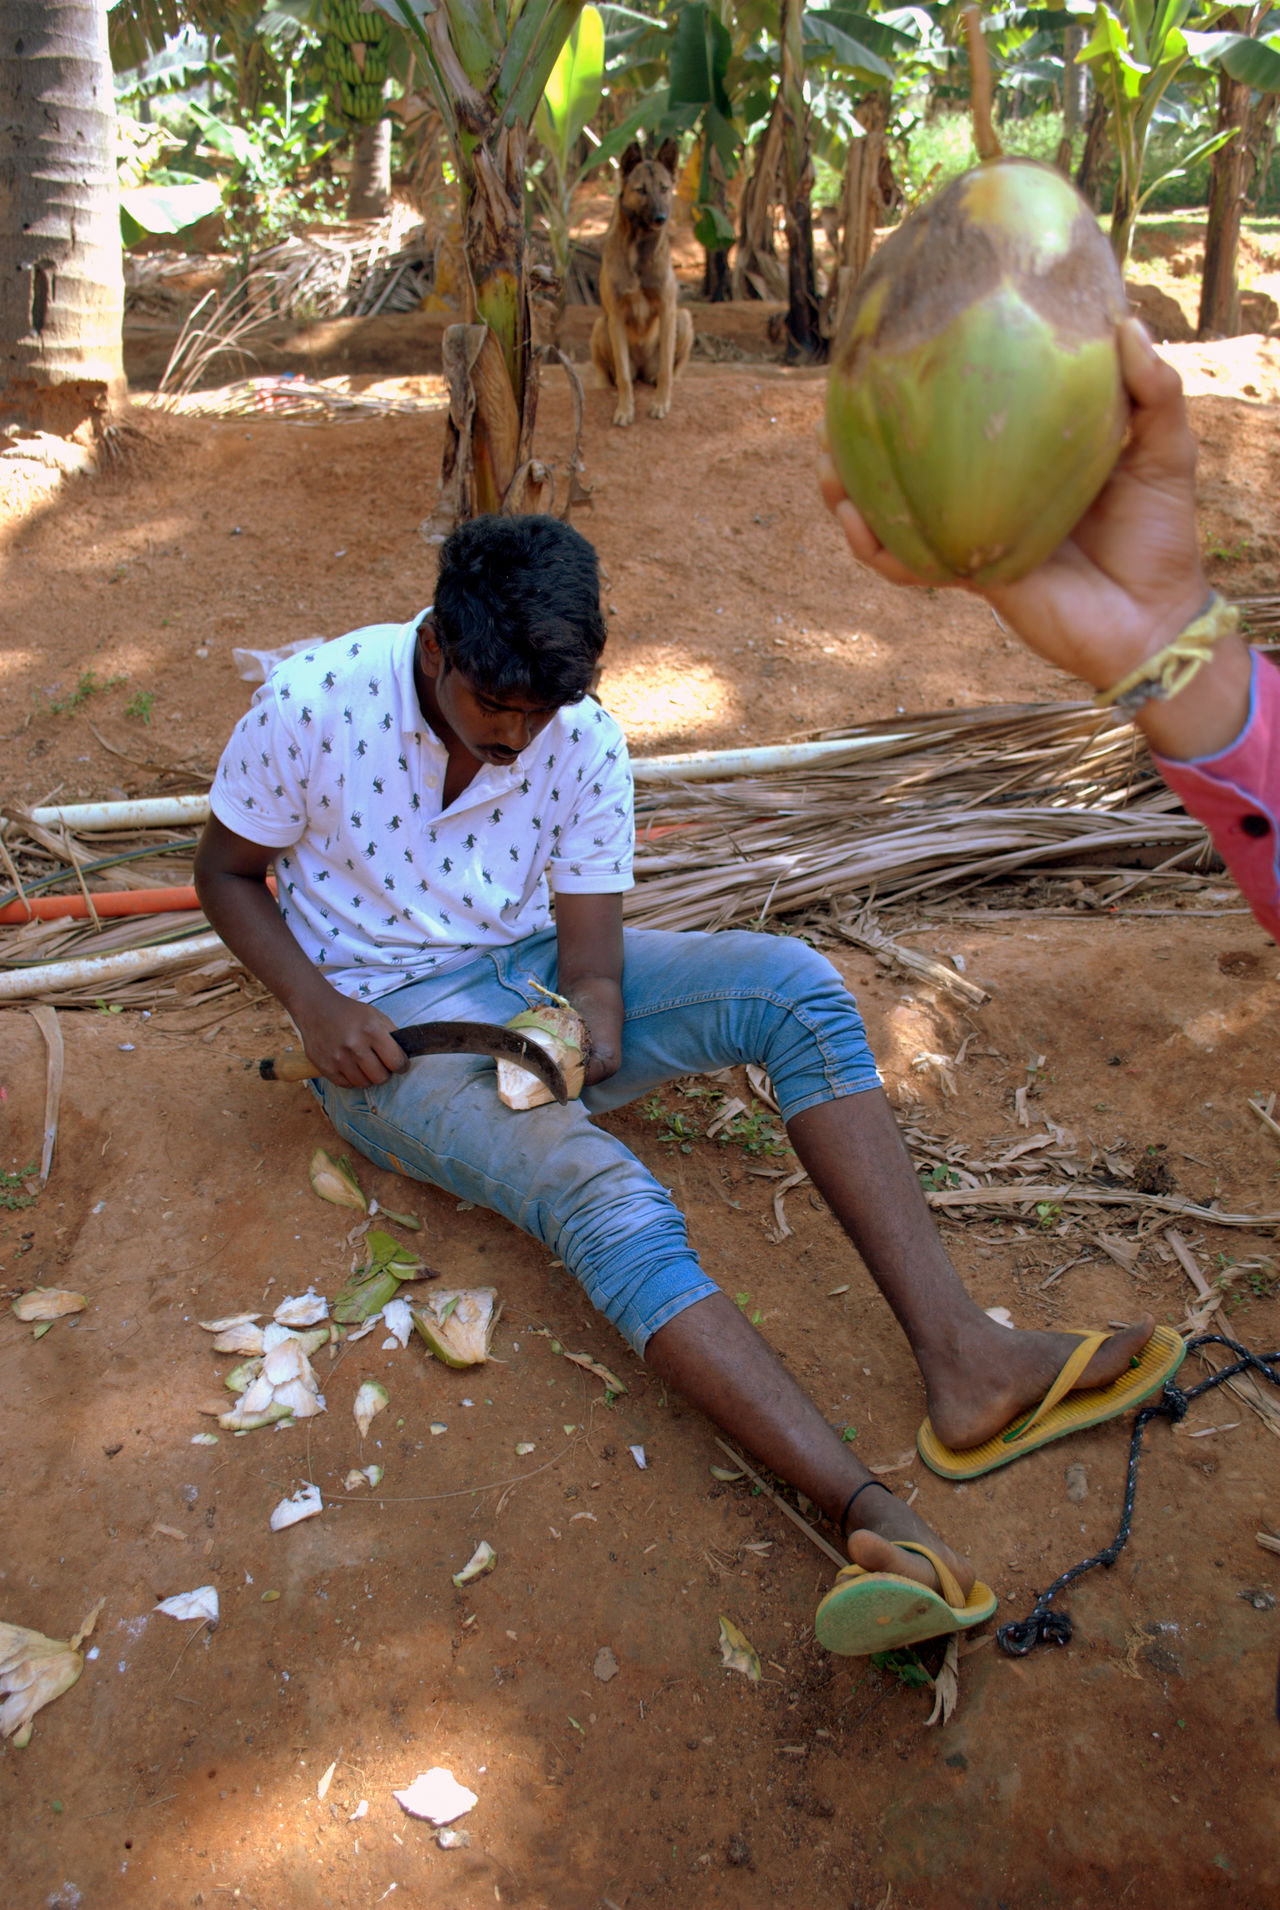 People Life Adult Coconut Coconut Chipping, Daily Life Day Dog Inspiration Inspiring View Knife, Nature One Hand Outdoors People People Photography People, Sand Sitting Two Persons